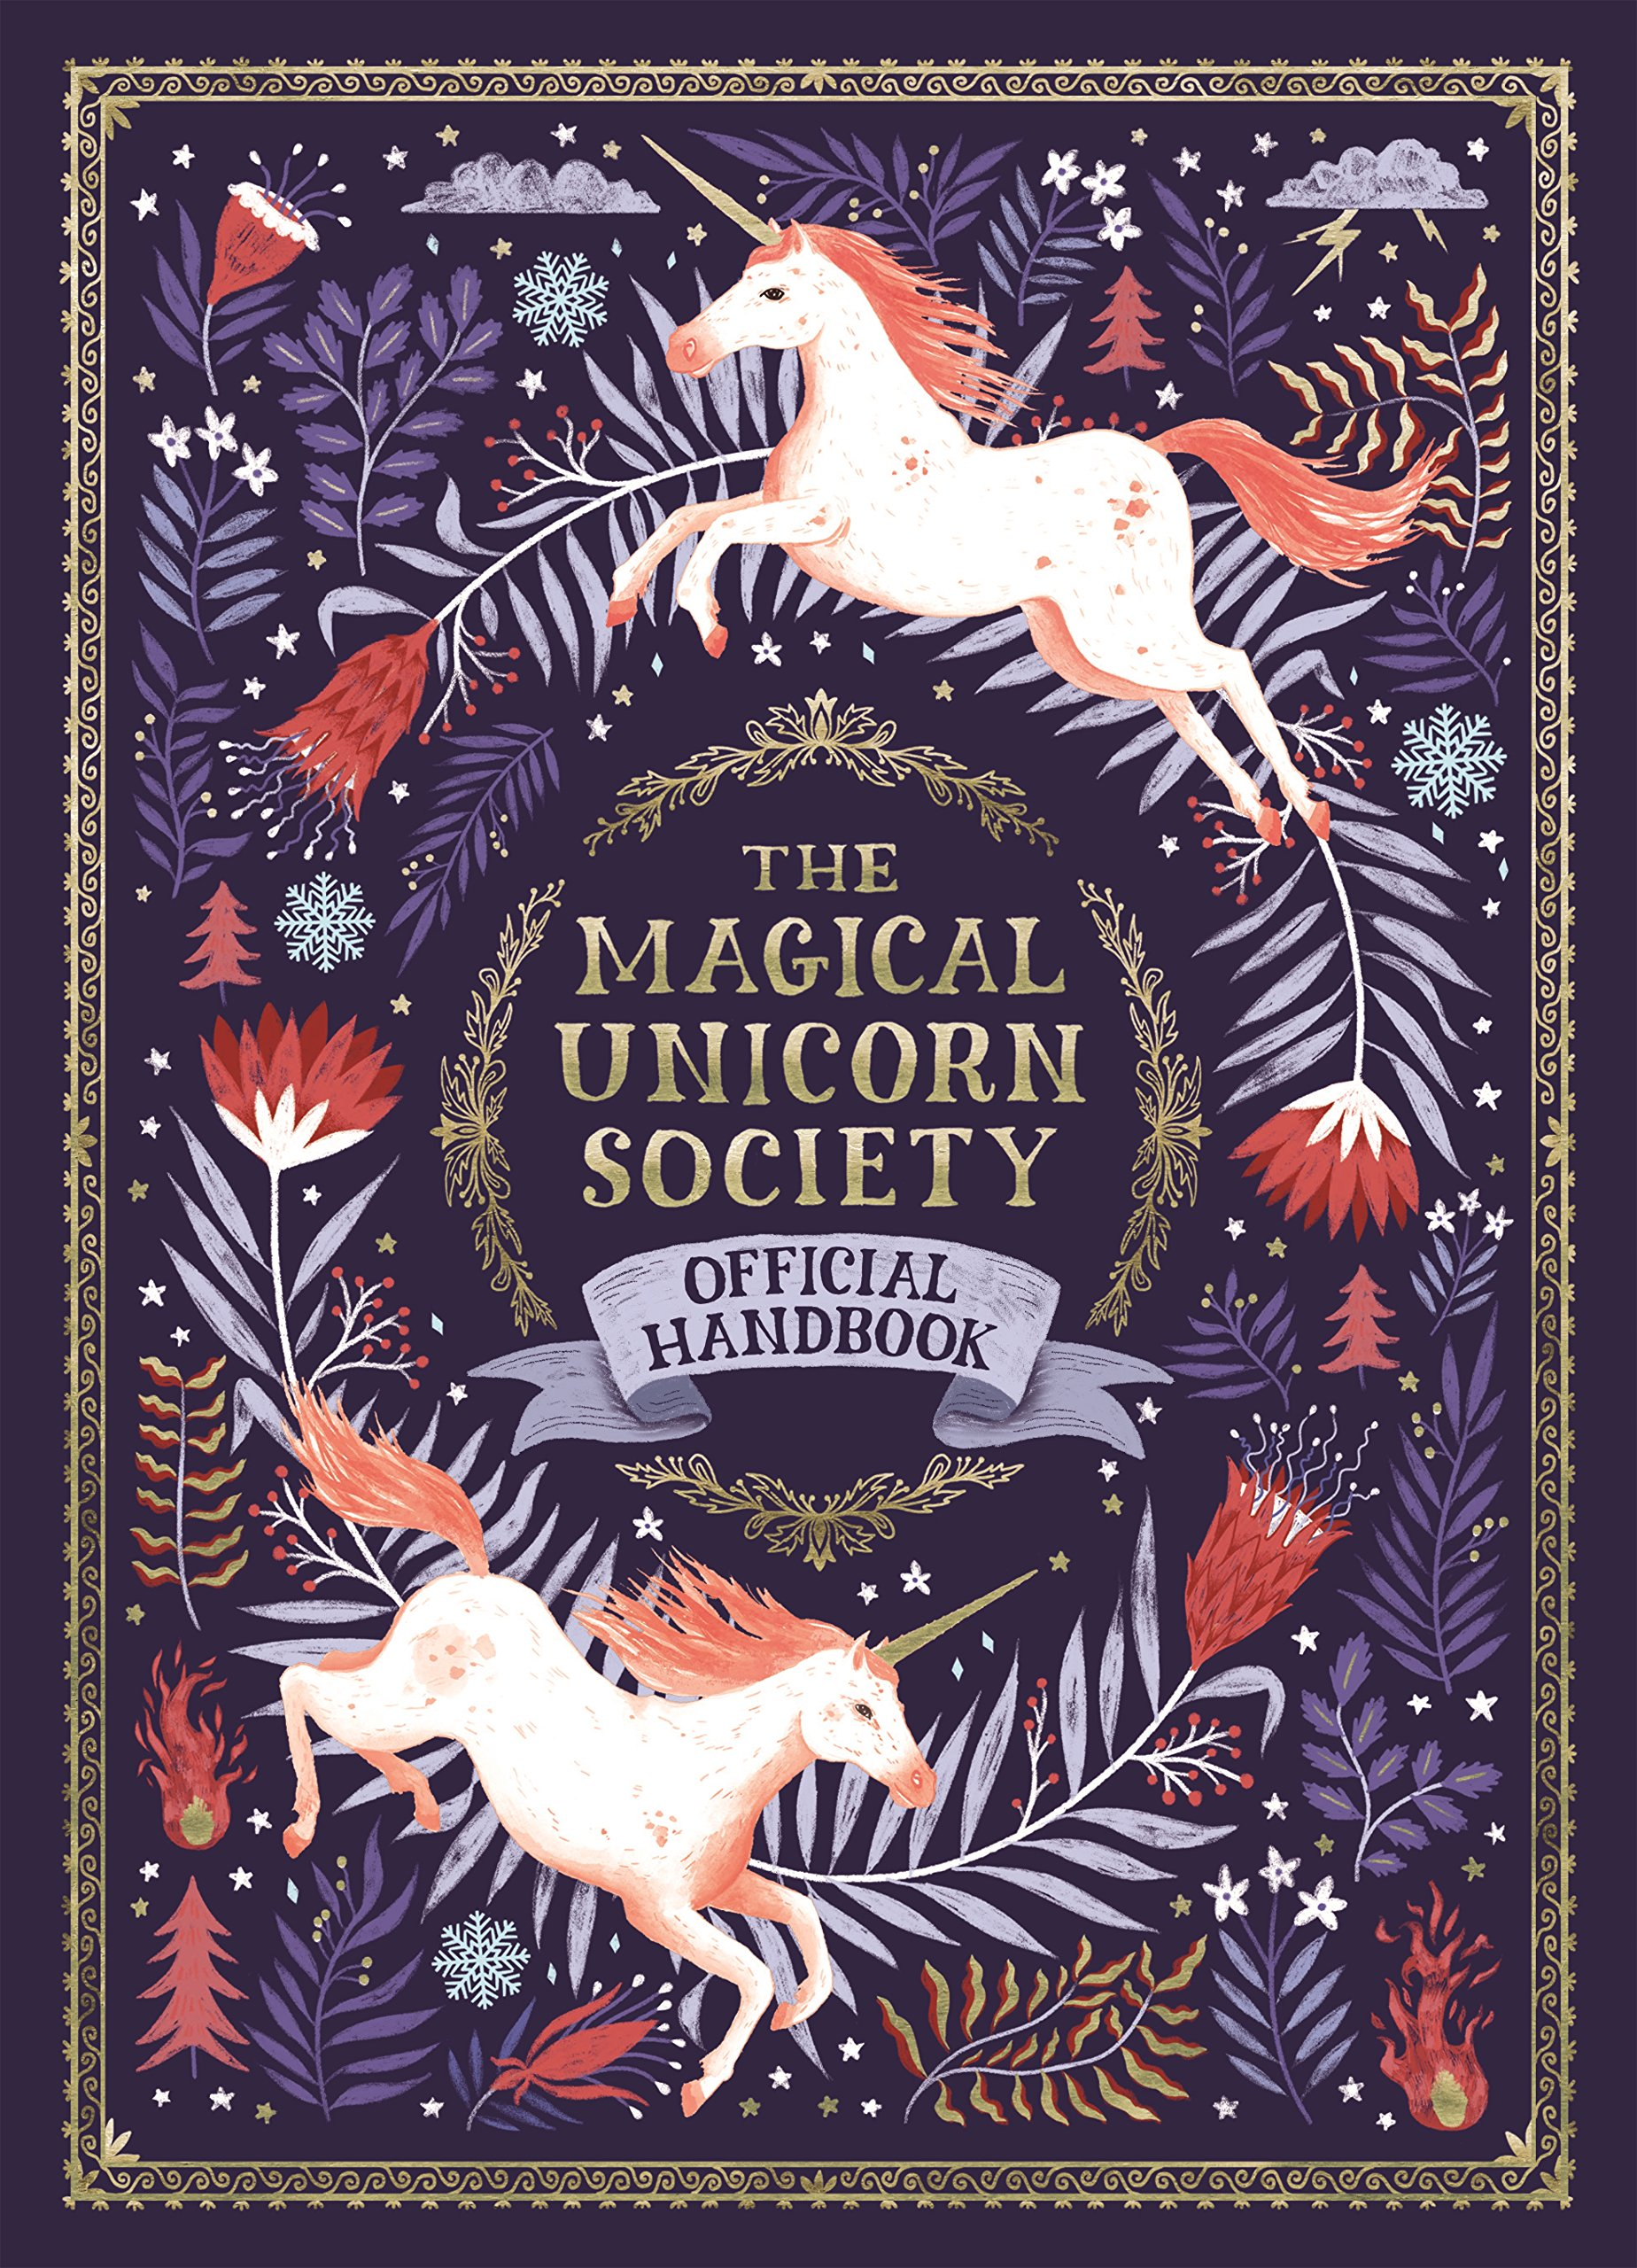 The Magical Unicorn Society Official Handbook (The Magical Unicorn Society, 1) 3